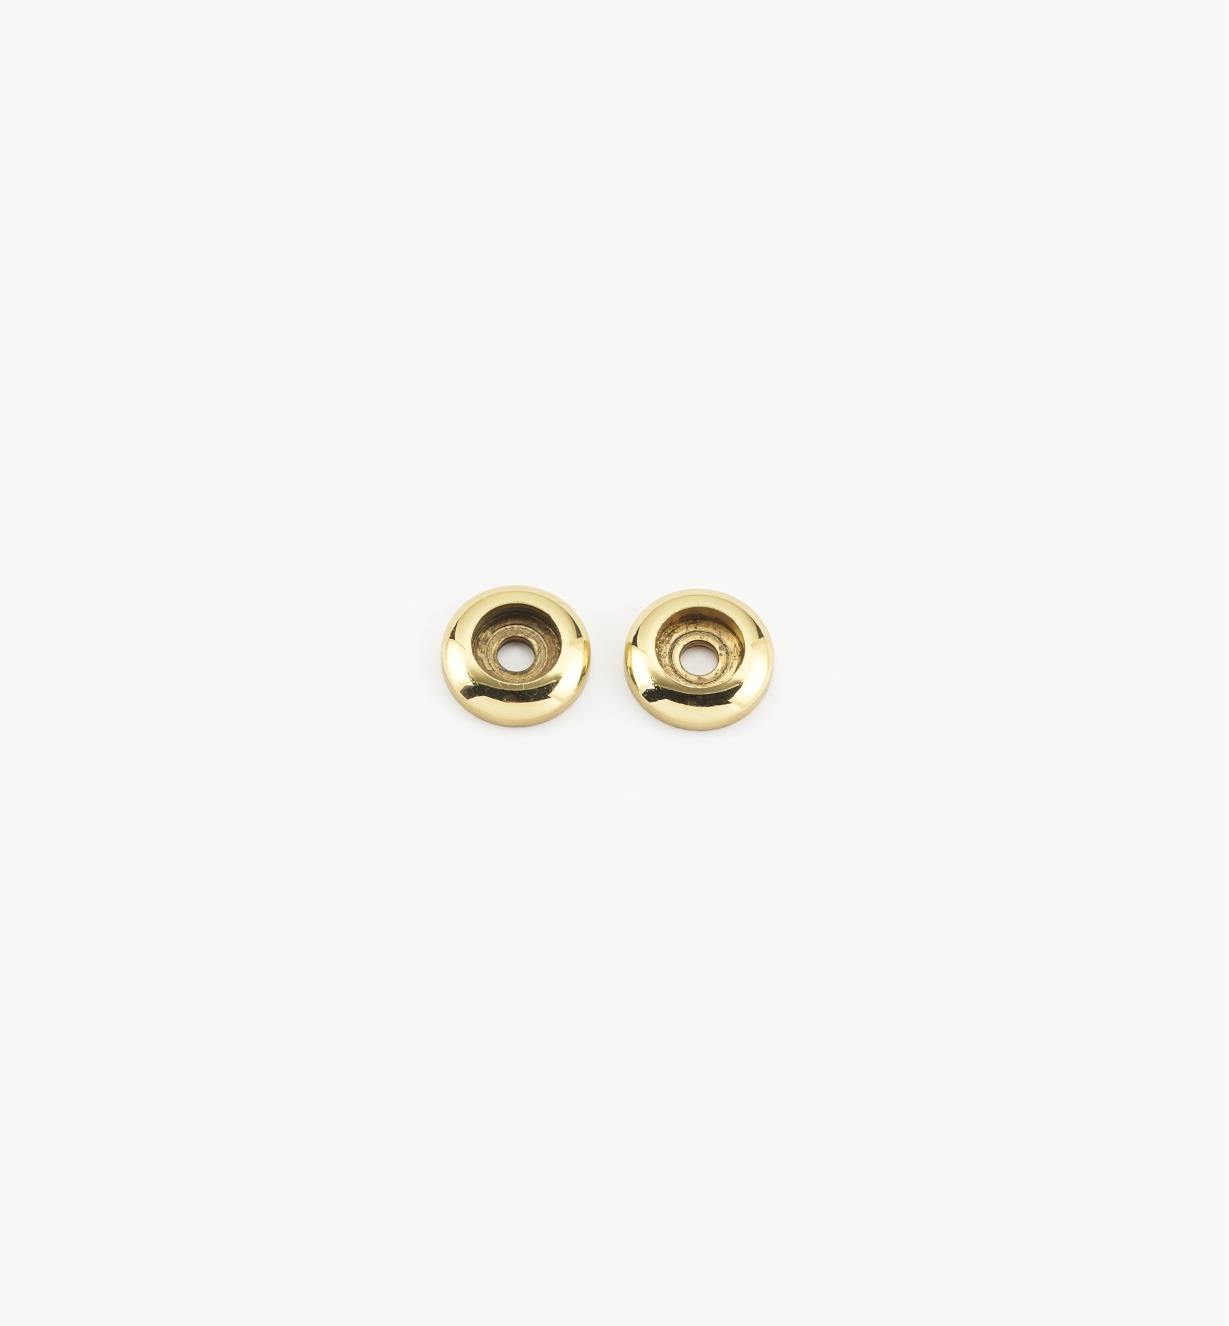 00W7810 - Polished Brass Handle Spacers, pair